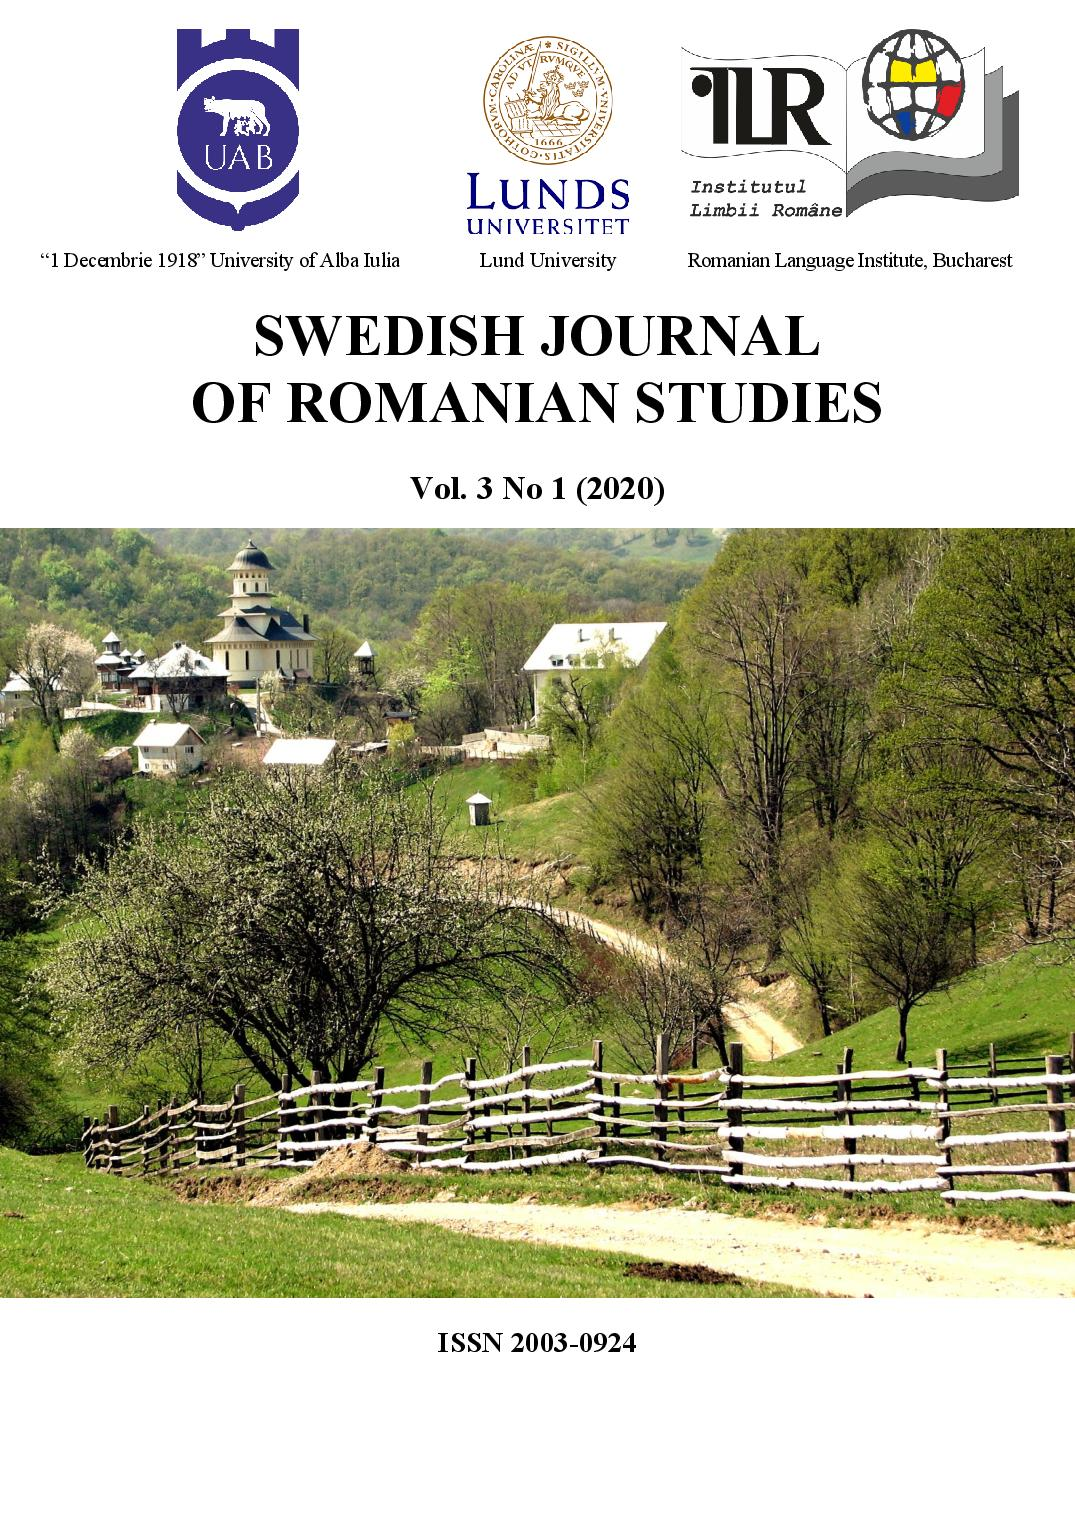 The cover photo was taken on April 15th, 2009 and represents the road to Afteia Monastery, Alba County, Romania